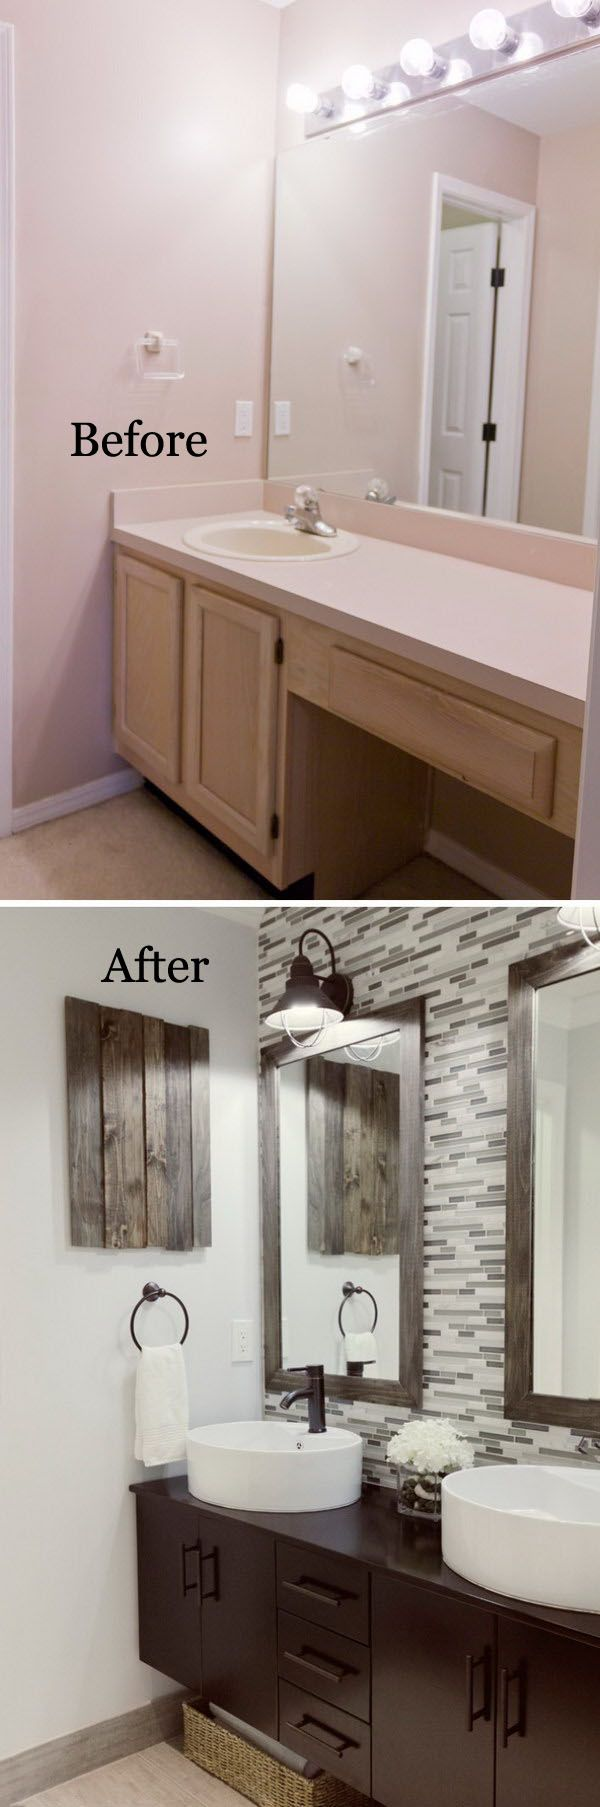 Bathroom Makeover Ideas best 25+ bathroom remodeling ideas on pinterest | small bathroom